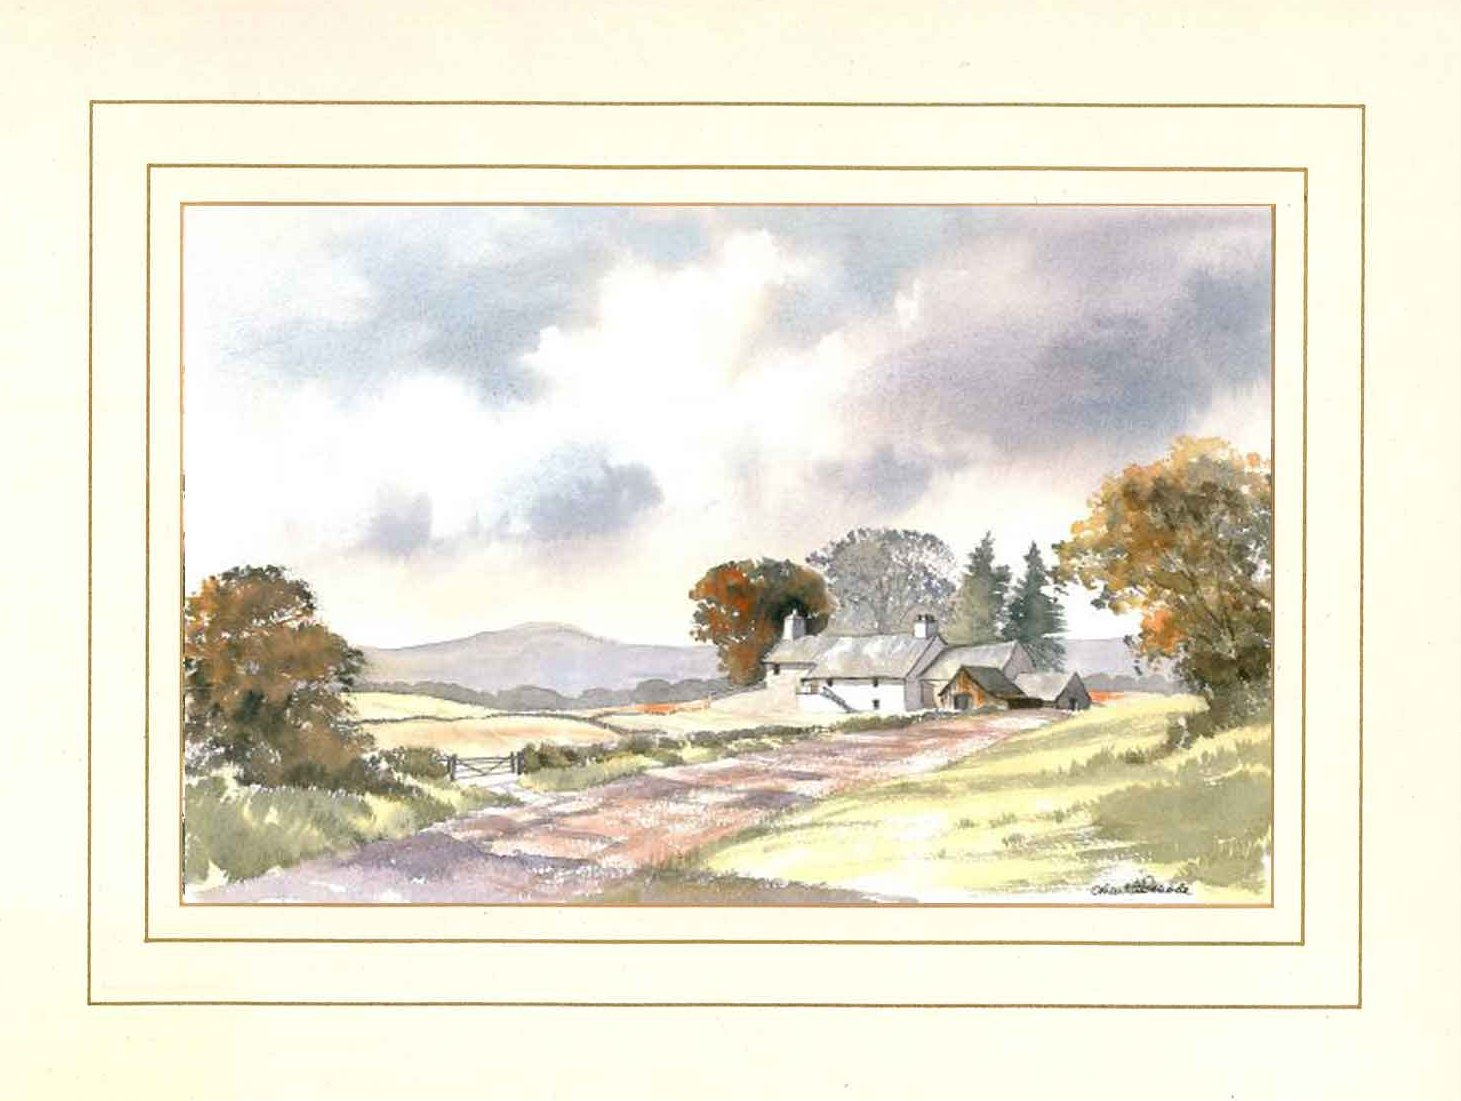 Sawley Moor Farm, Wharfedale, Original Watercolour Painting by Martin Goode